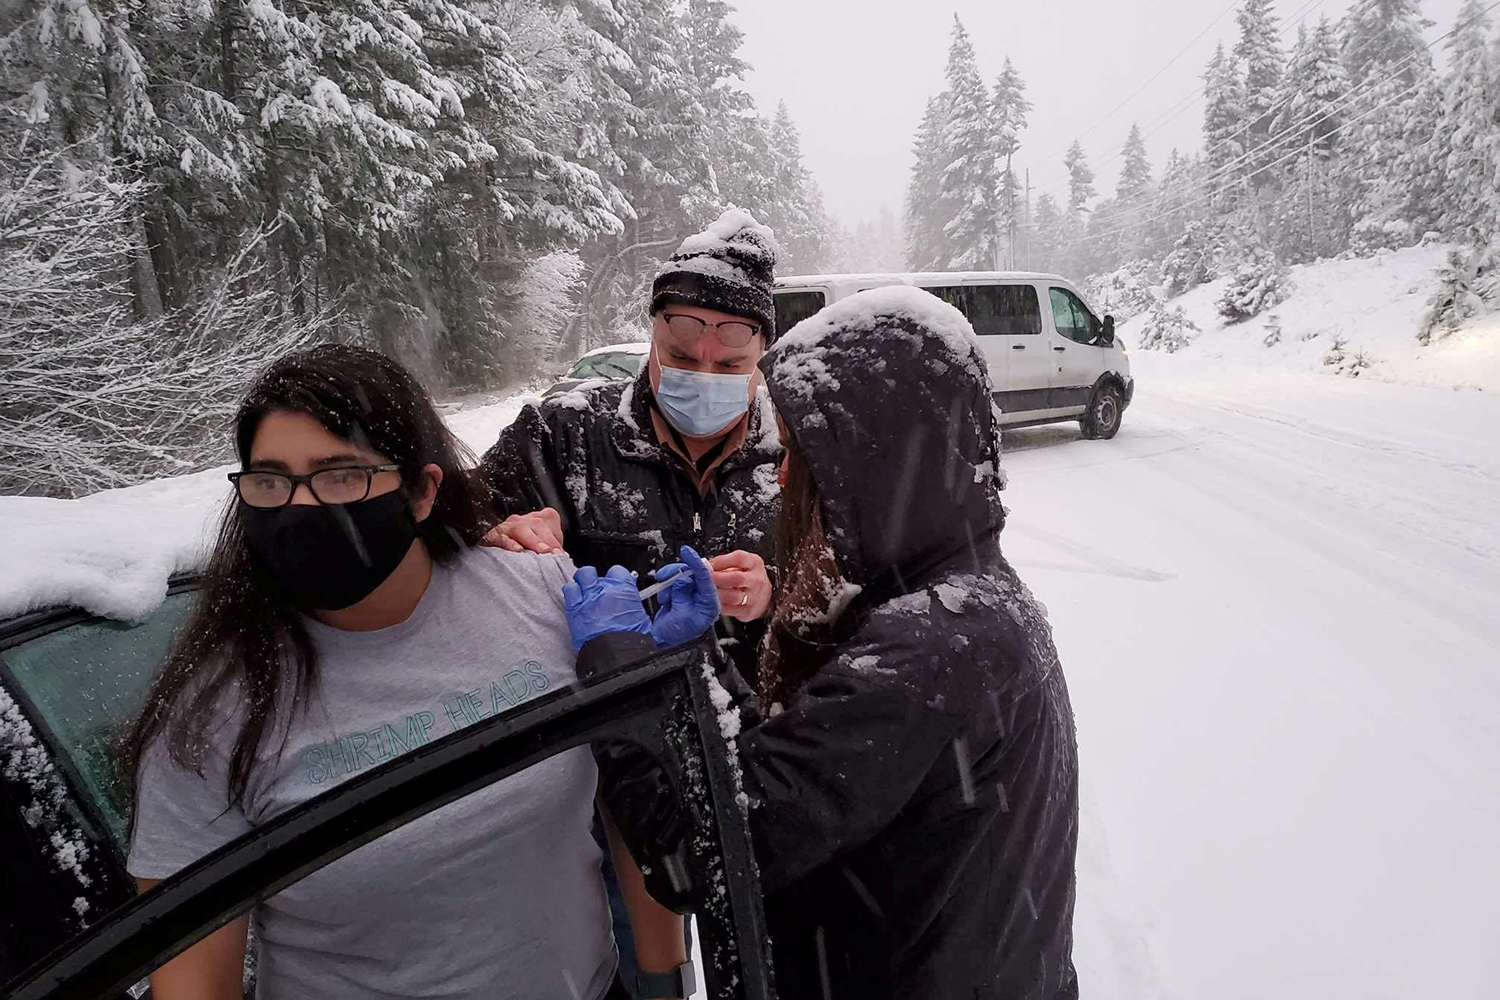 While being stuck in traffic during a snowstorm, Josephine County Public Health staff and volunteers administer COVID-19 vaccinations along Highway 199 in Hayes Hill, Oregon, on Jan. 26. Josephine County Public Health/via REUTERS